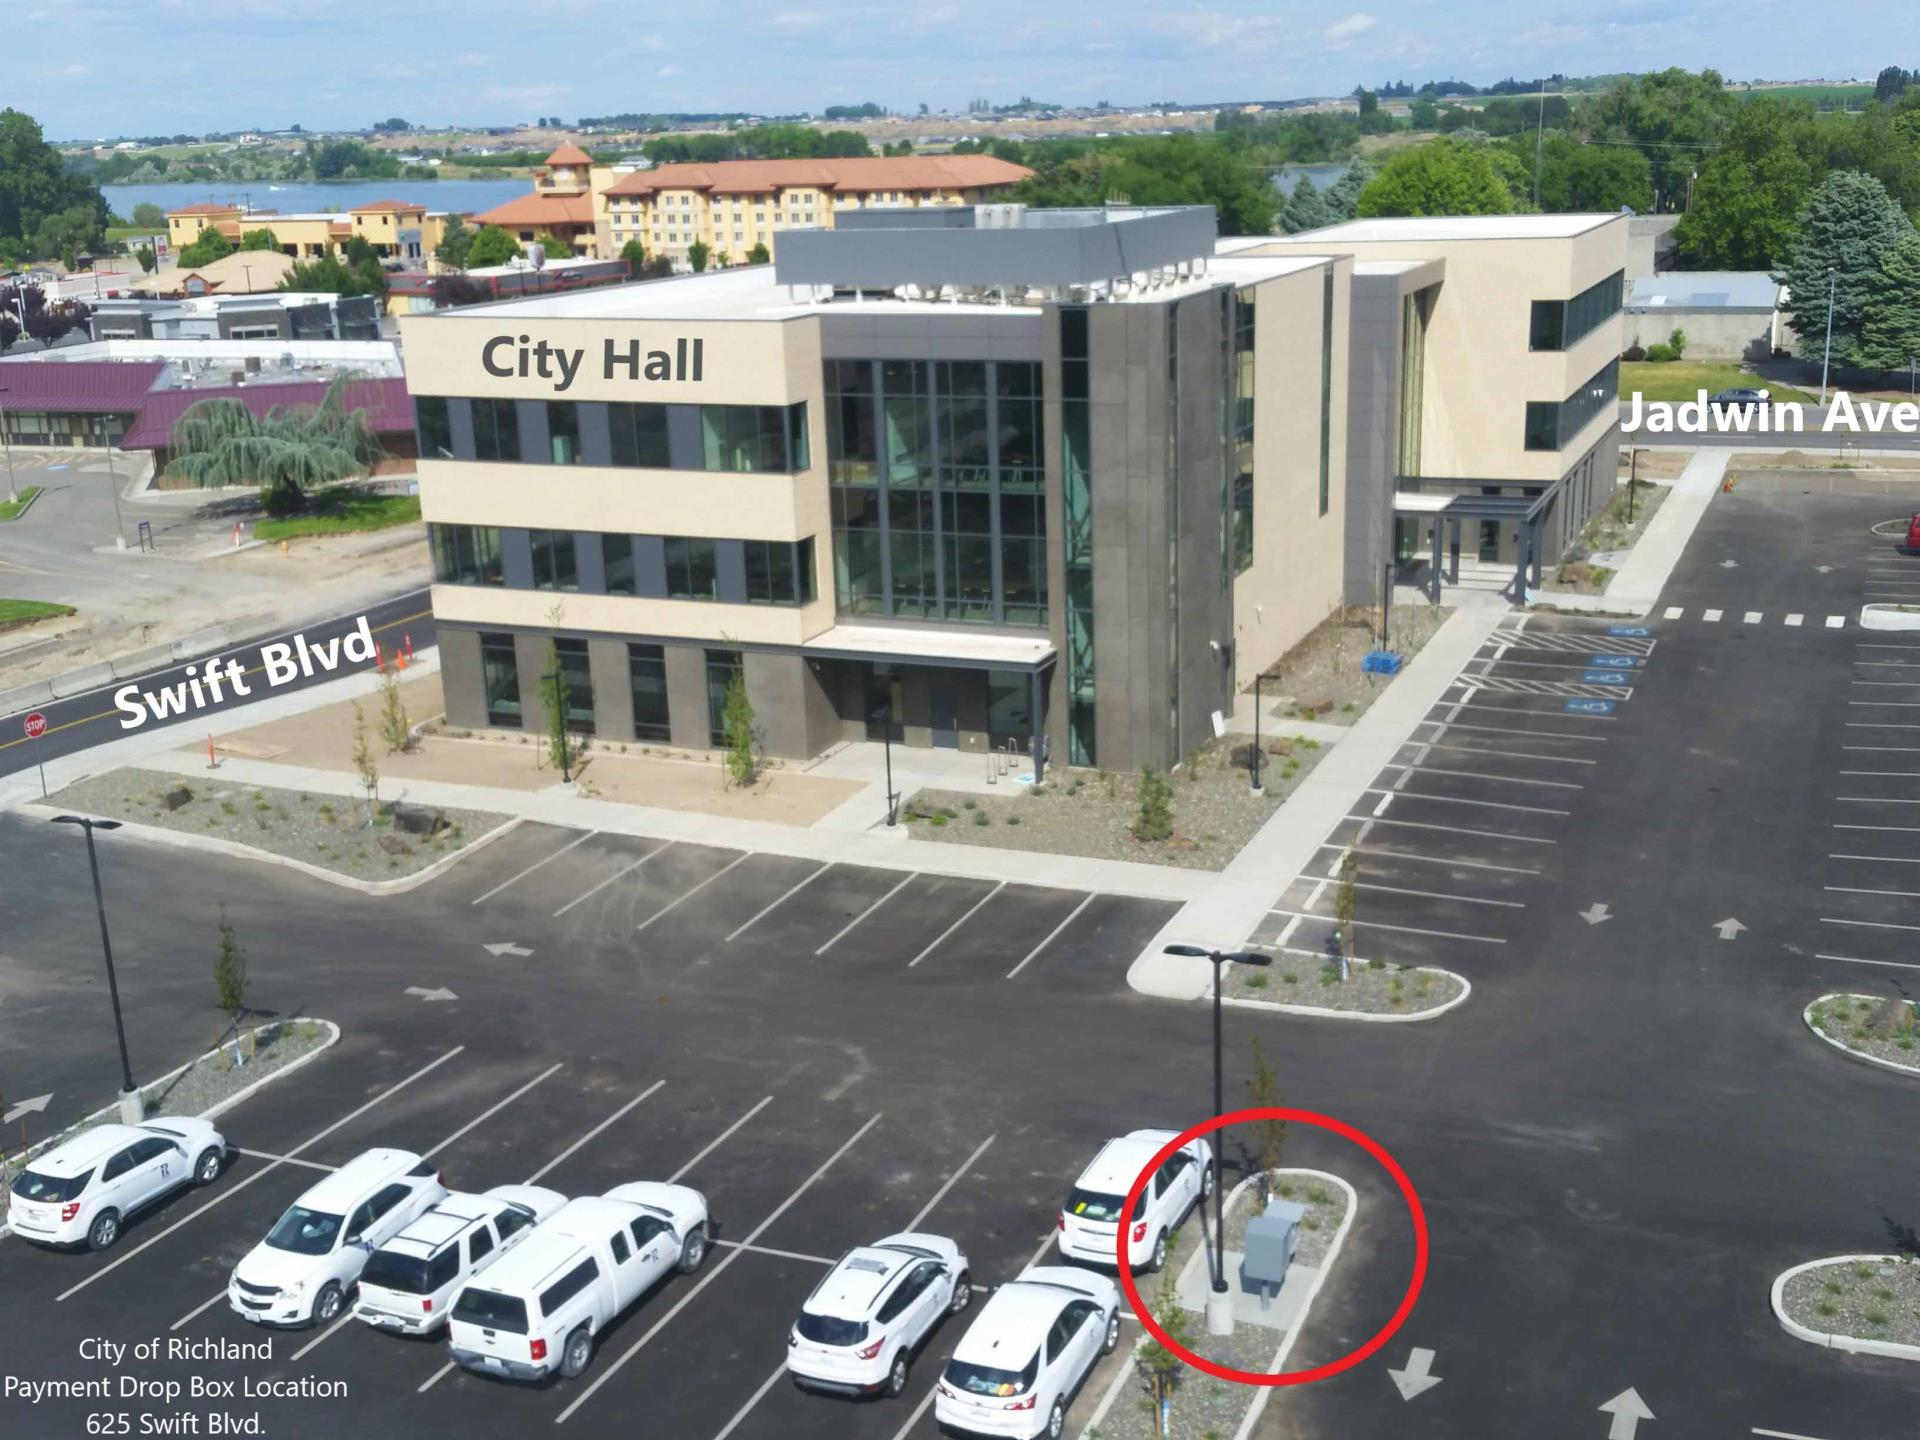 map of new City Hall with bill drop off box circled in red.